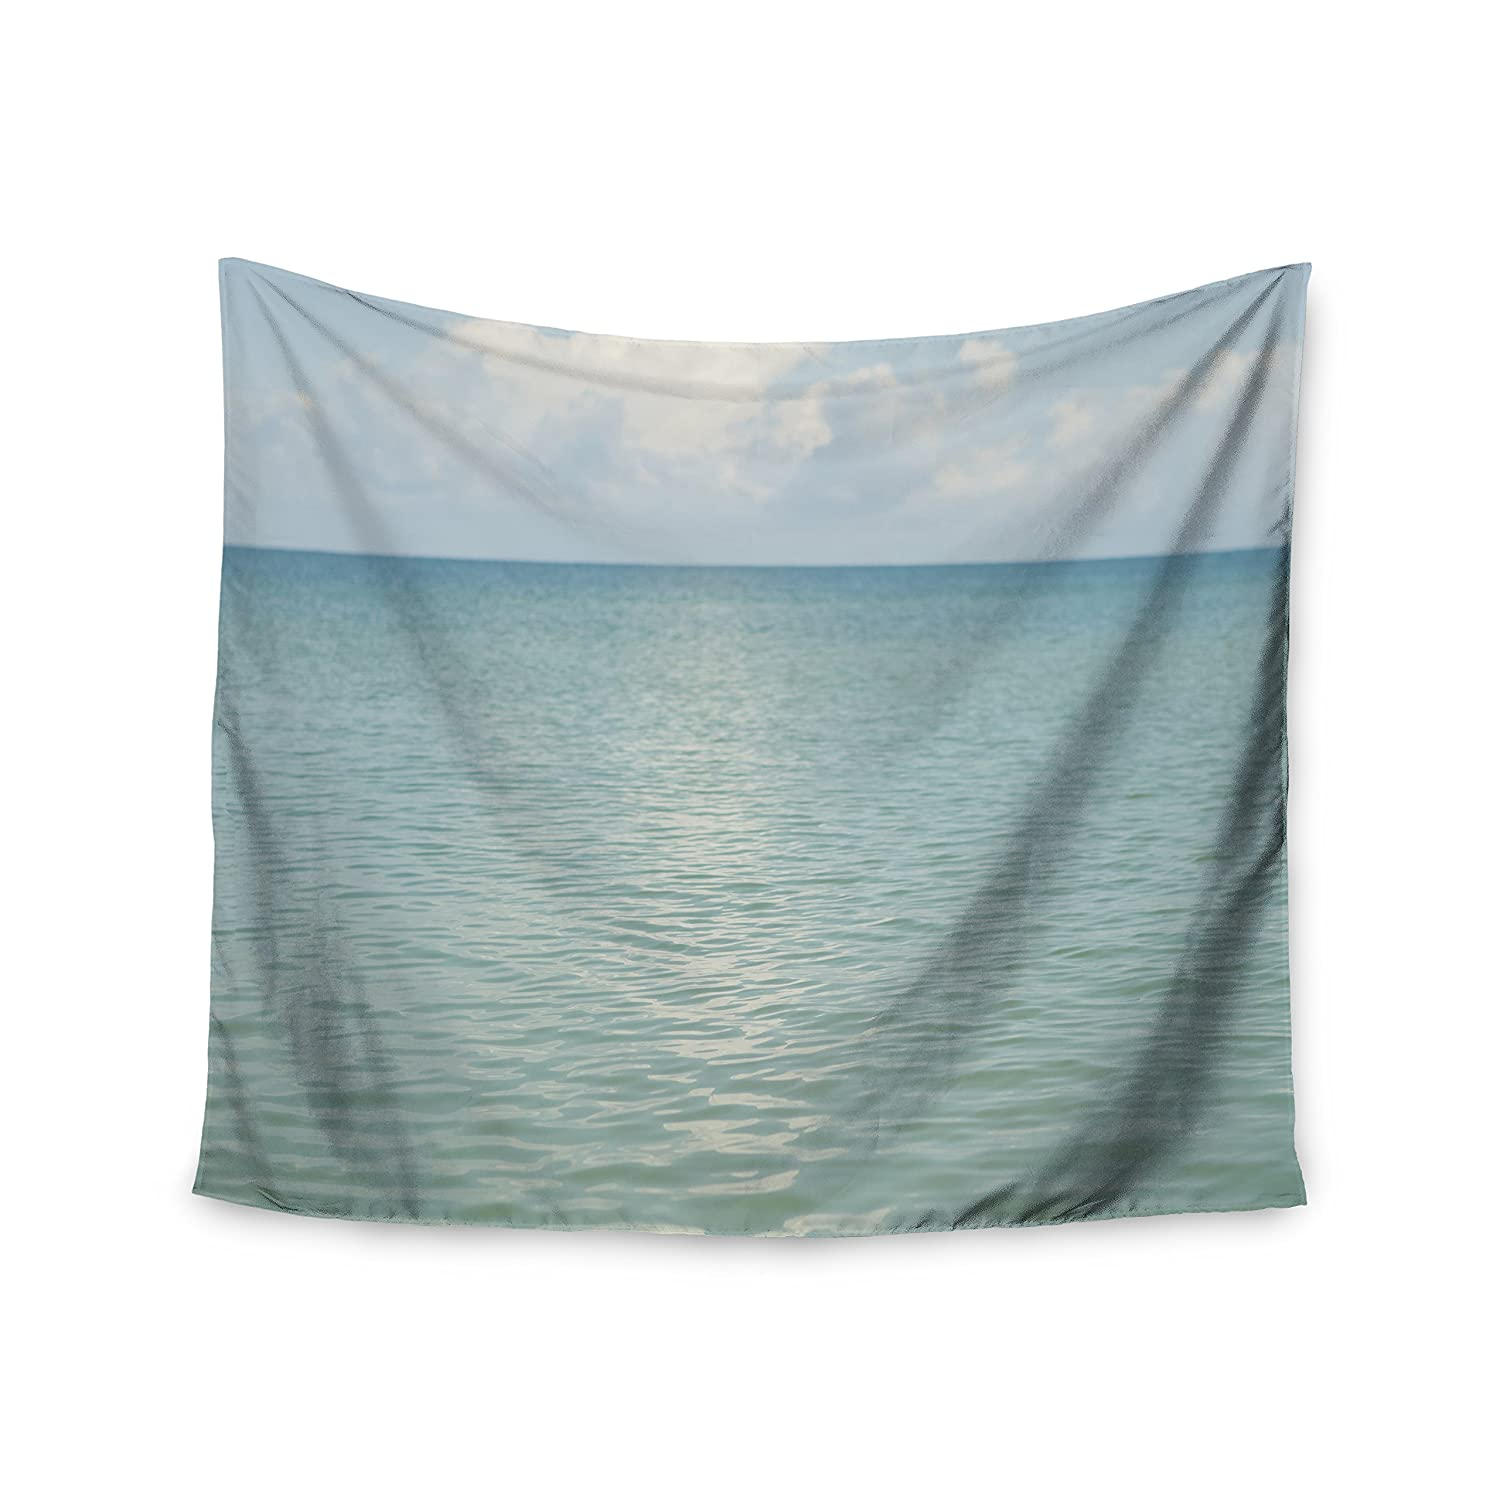 Kess InHouse Catherine McDonald Cloud Reflection Wall Tapestry 51 X 60